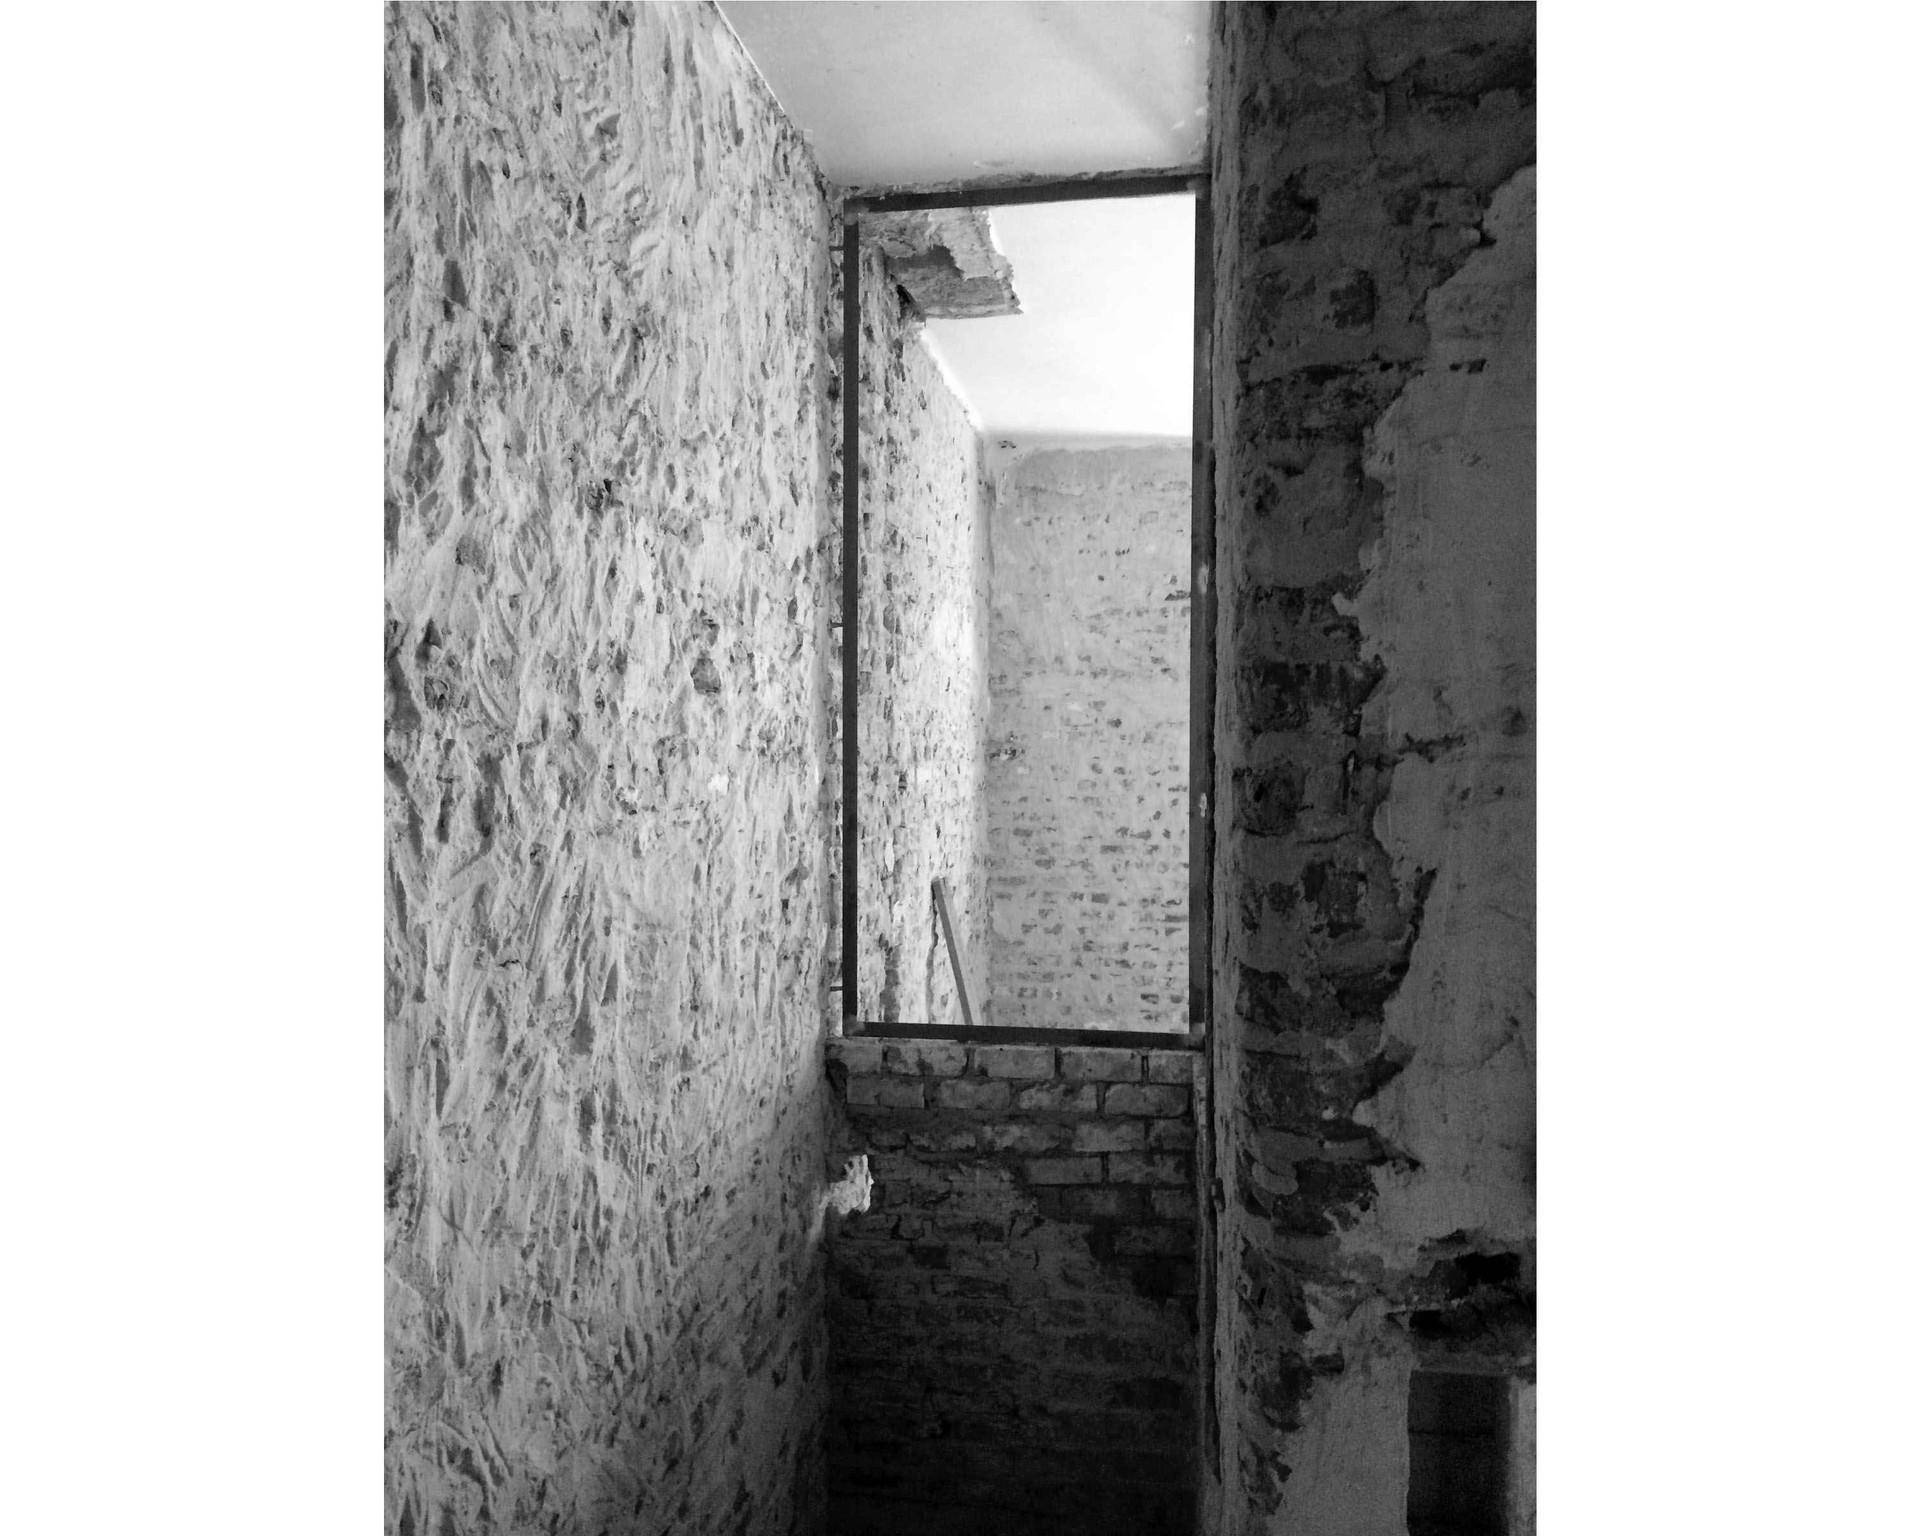 Photographie | situation existante